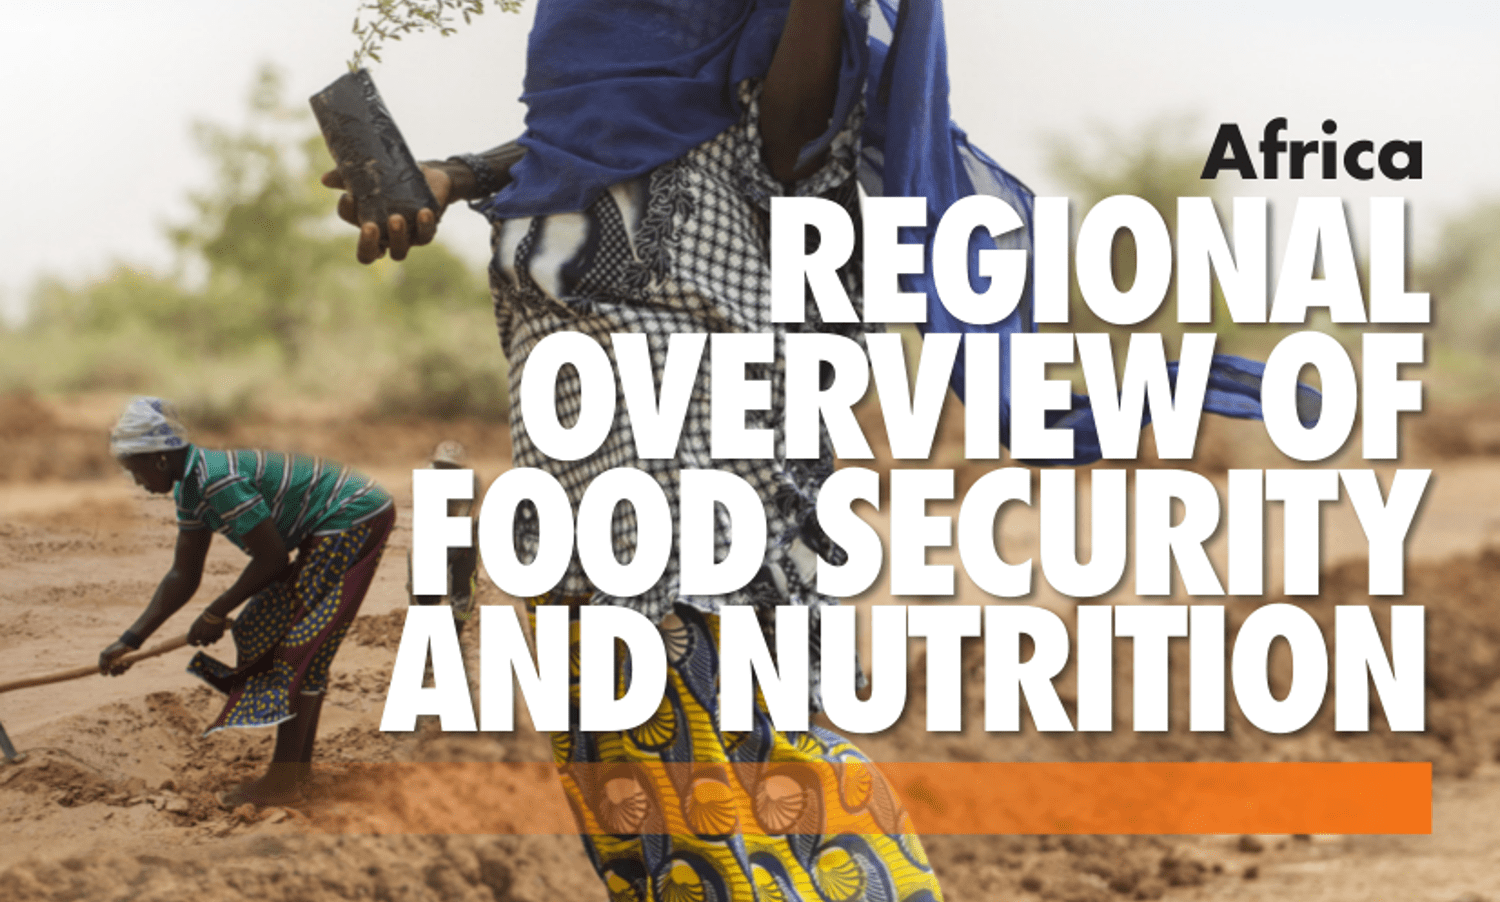 A new report by the U.N. Food and Agriculture Organization reveals a surge in hunger in sub-Saharan Africa due to conflict and climate change.